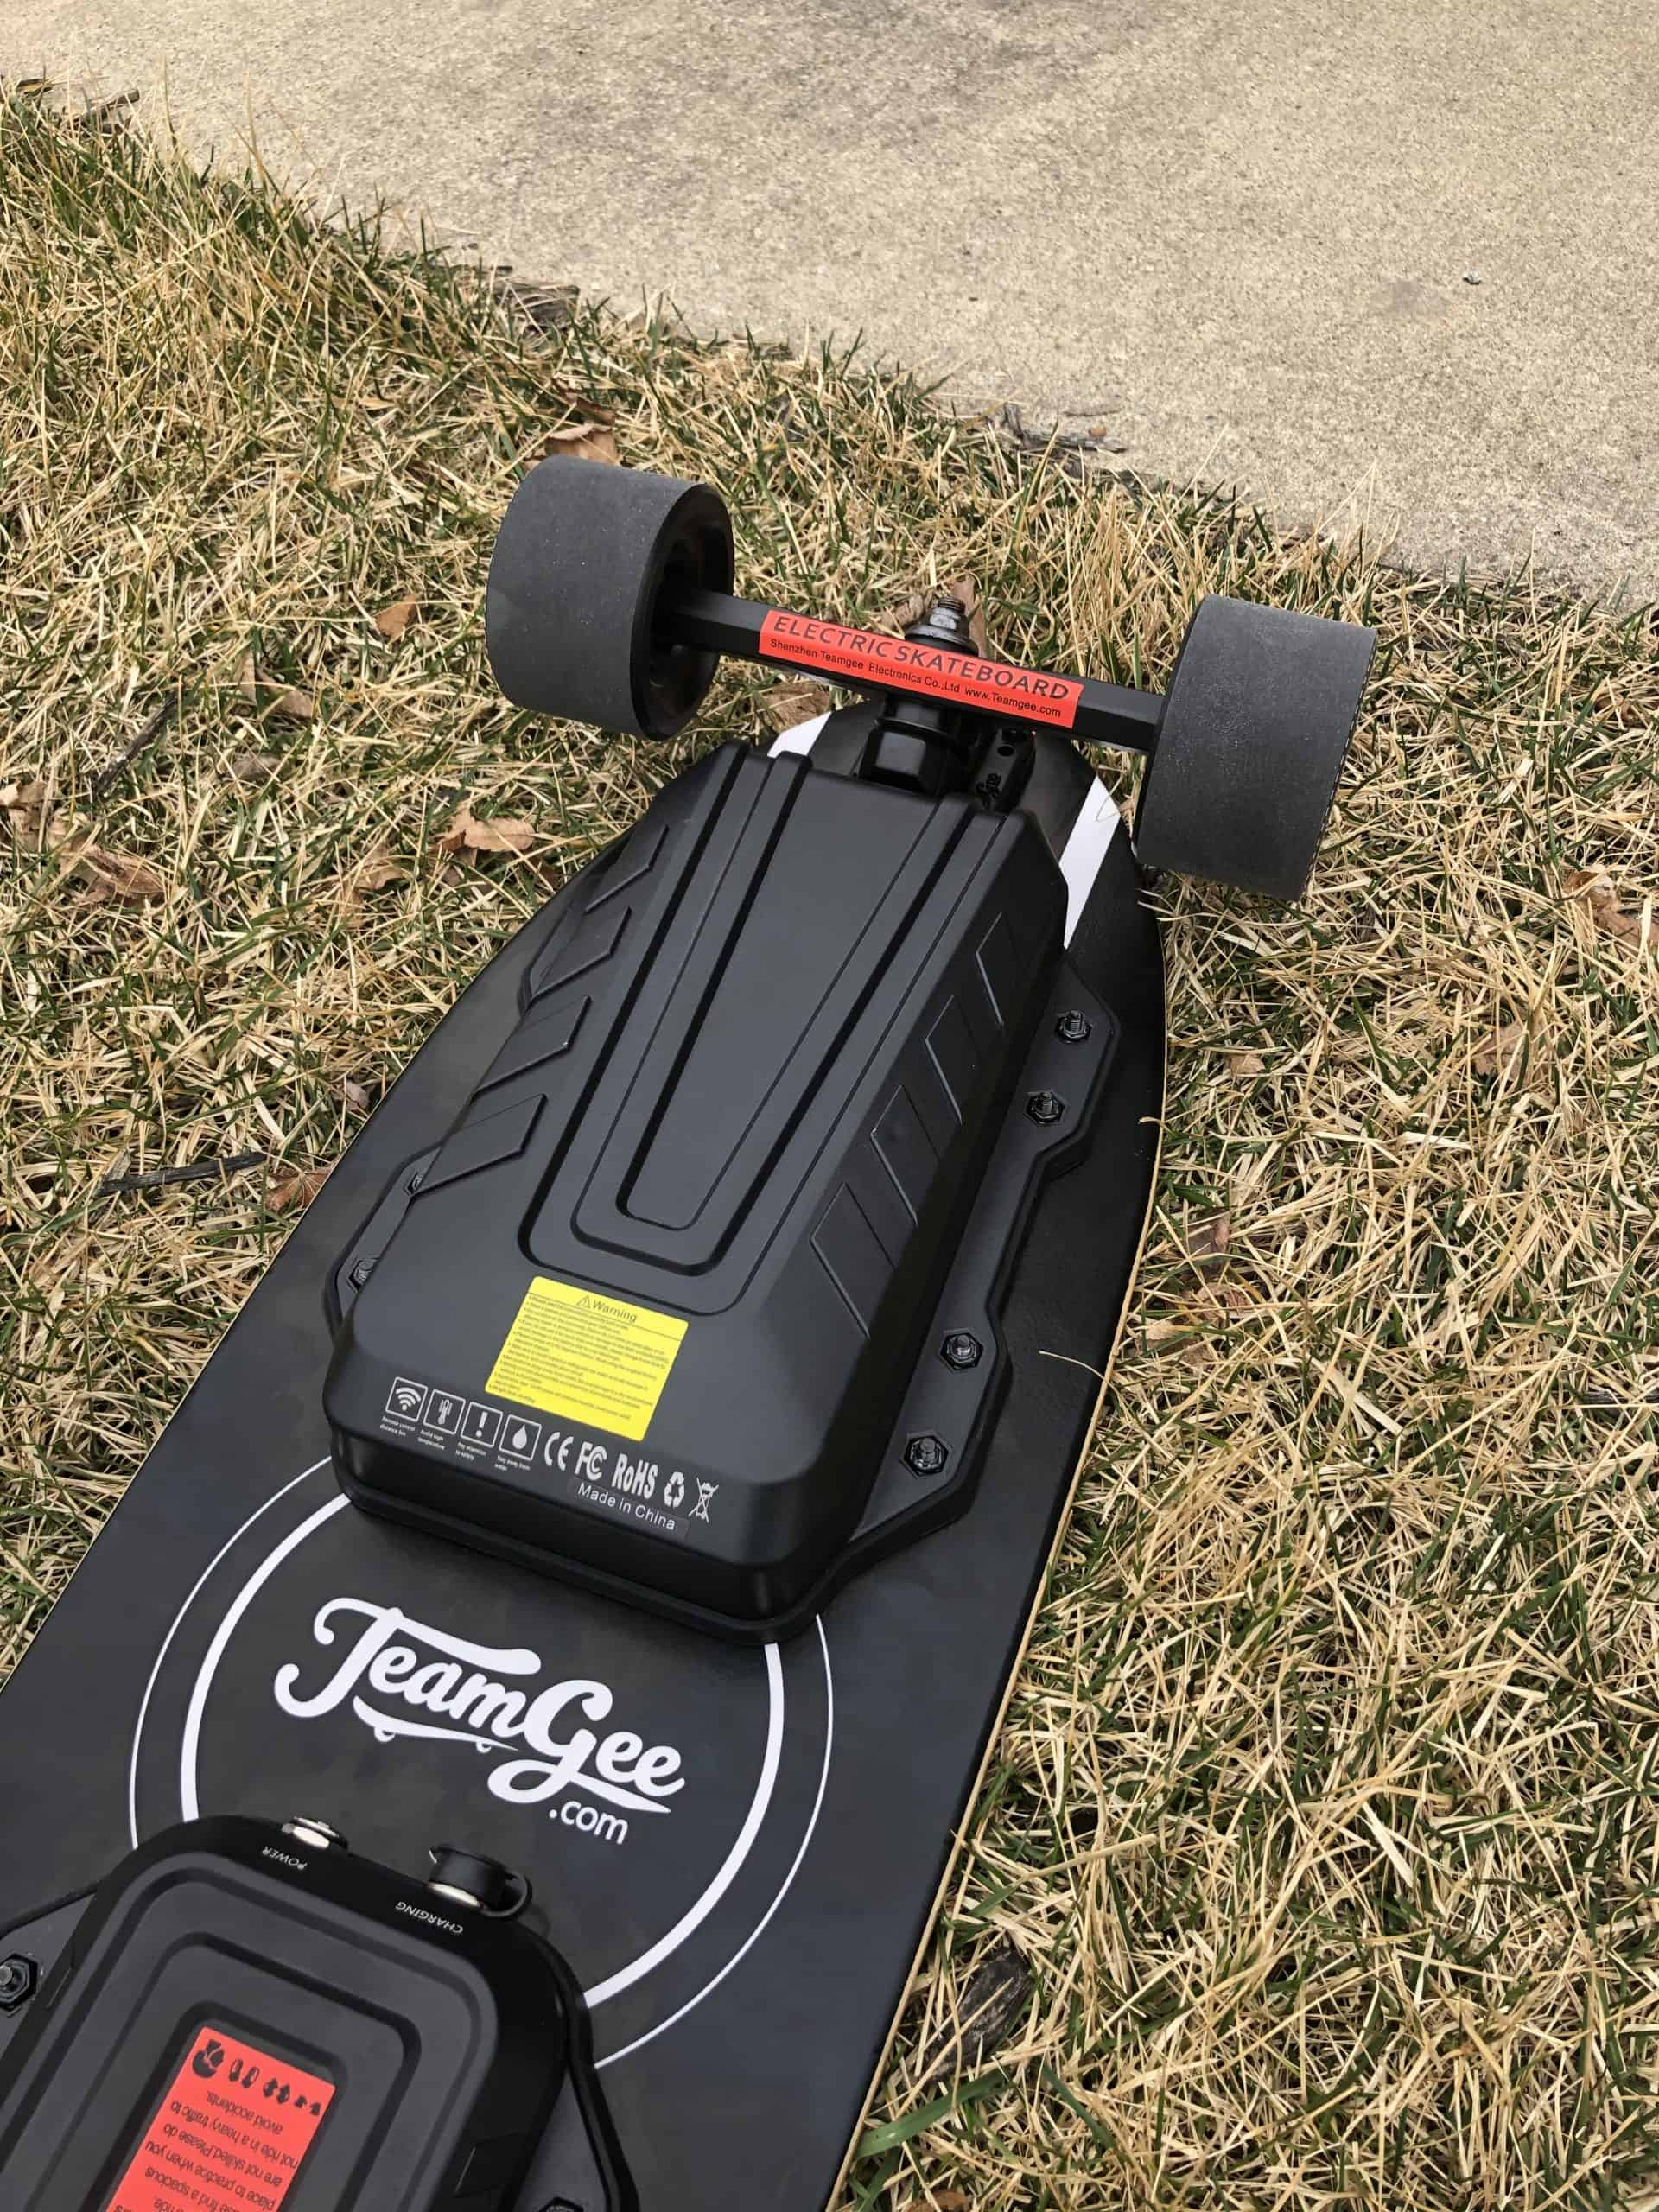 Teamgee H20 mini Review – Who is it for? 7